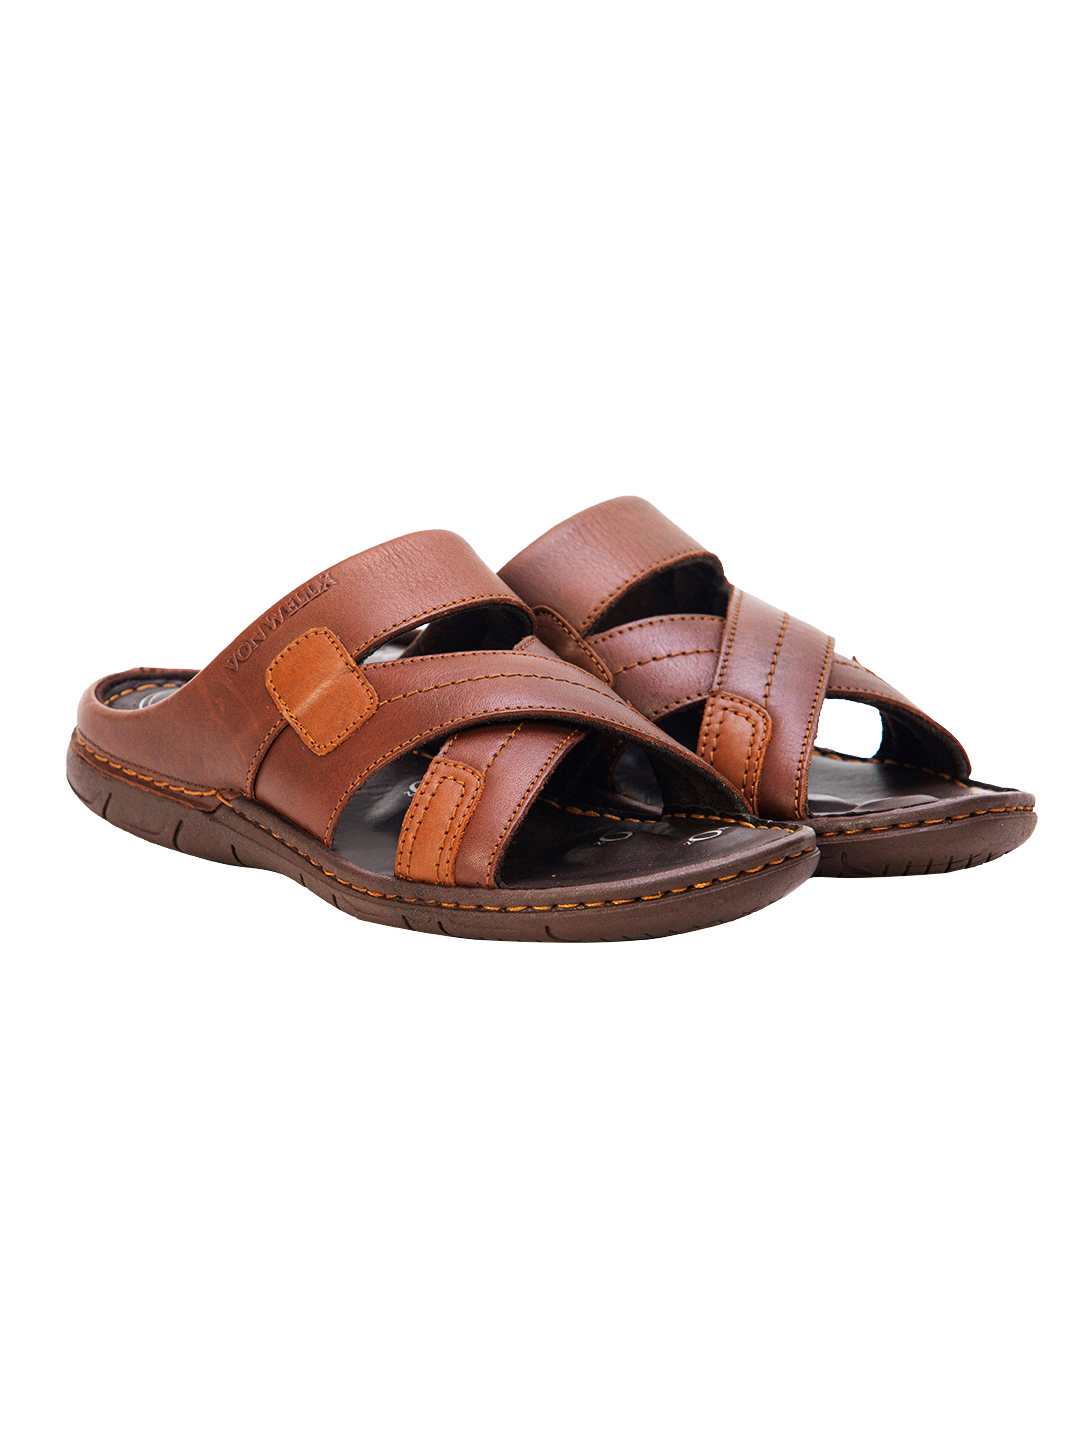 VON WELLX GERMANY COMFORT ROVE BROWN SLIPPERS